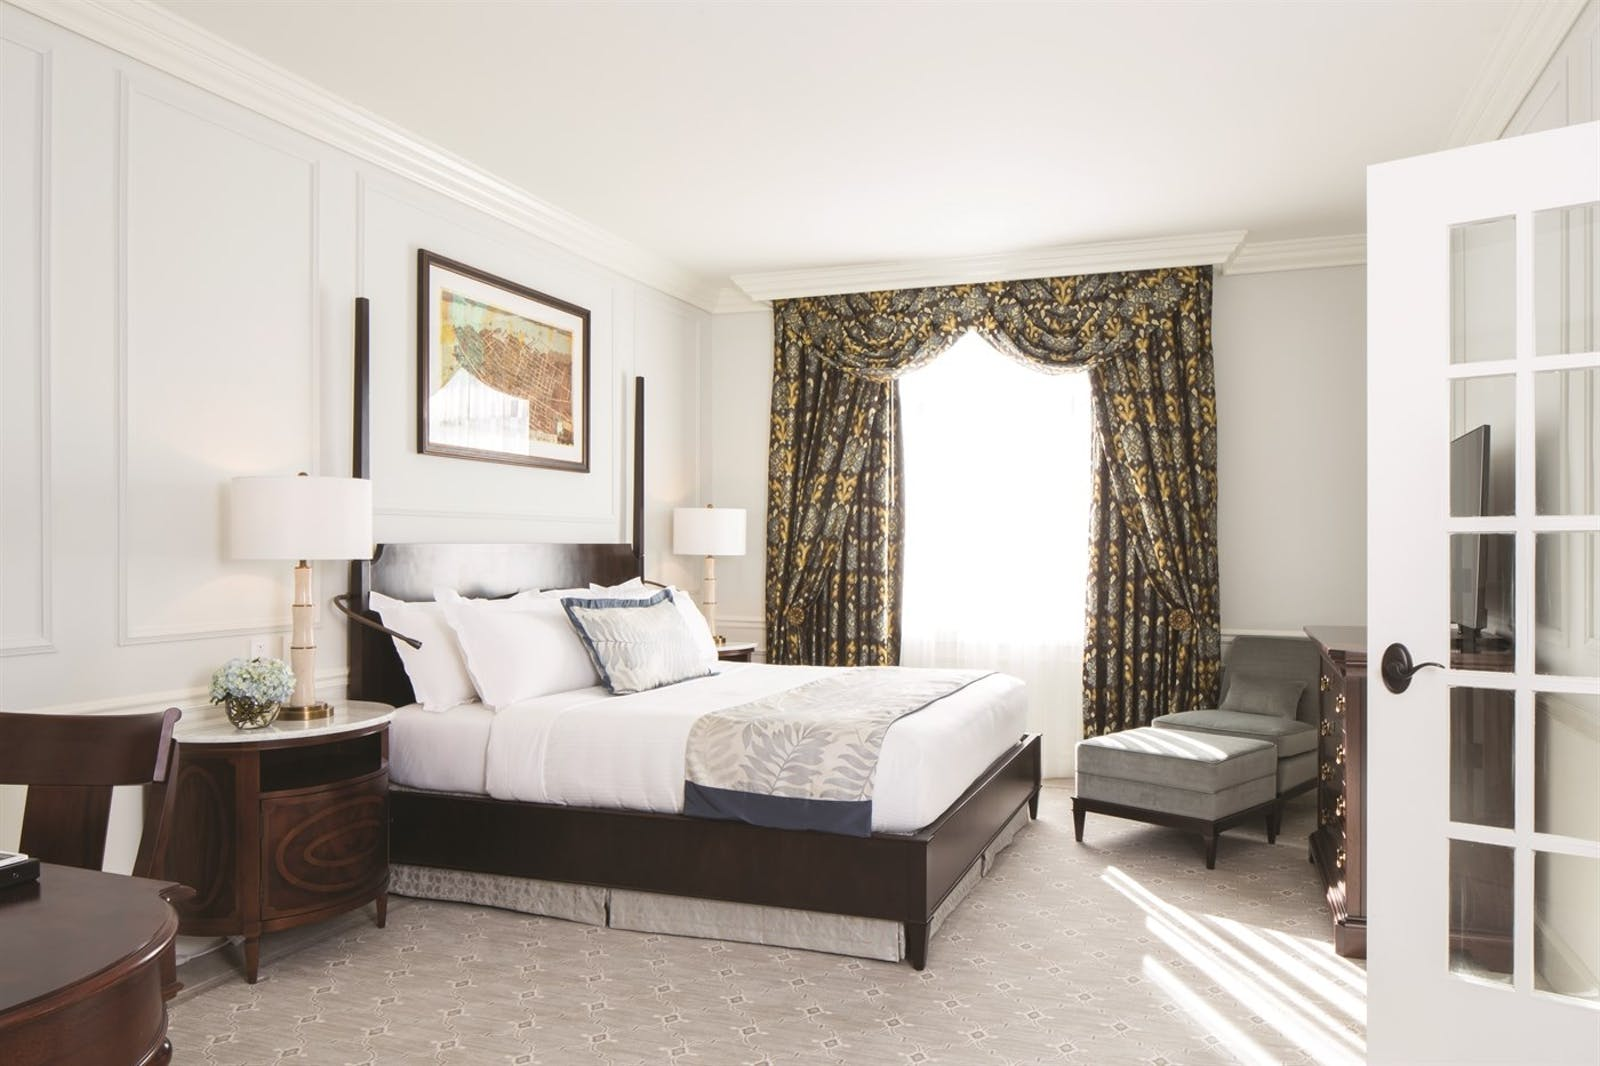 Bedroom at Belmond Charleston Place, Charleston